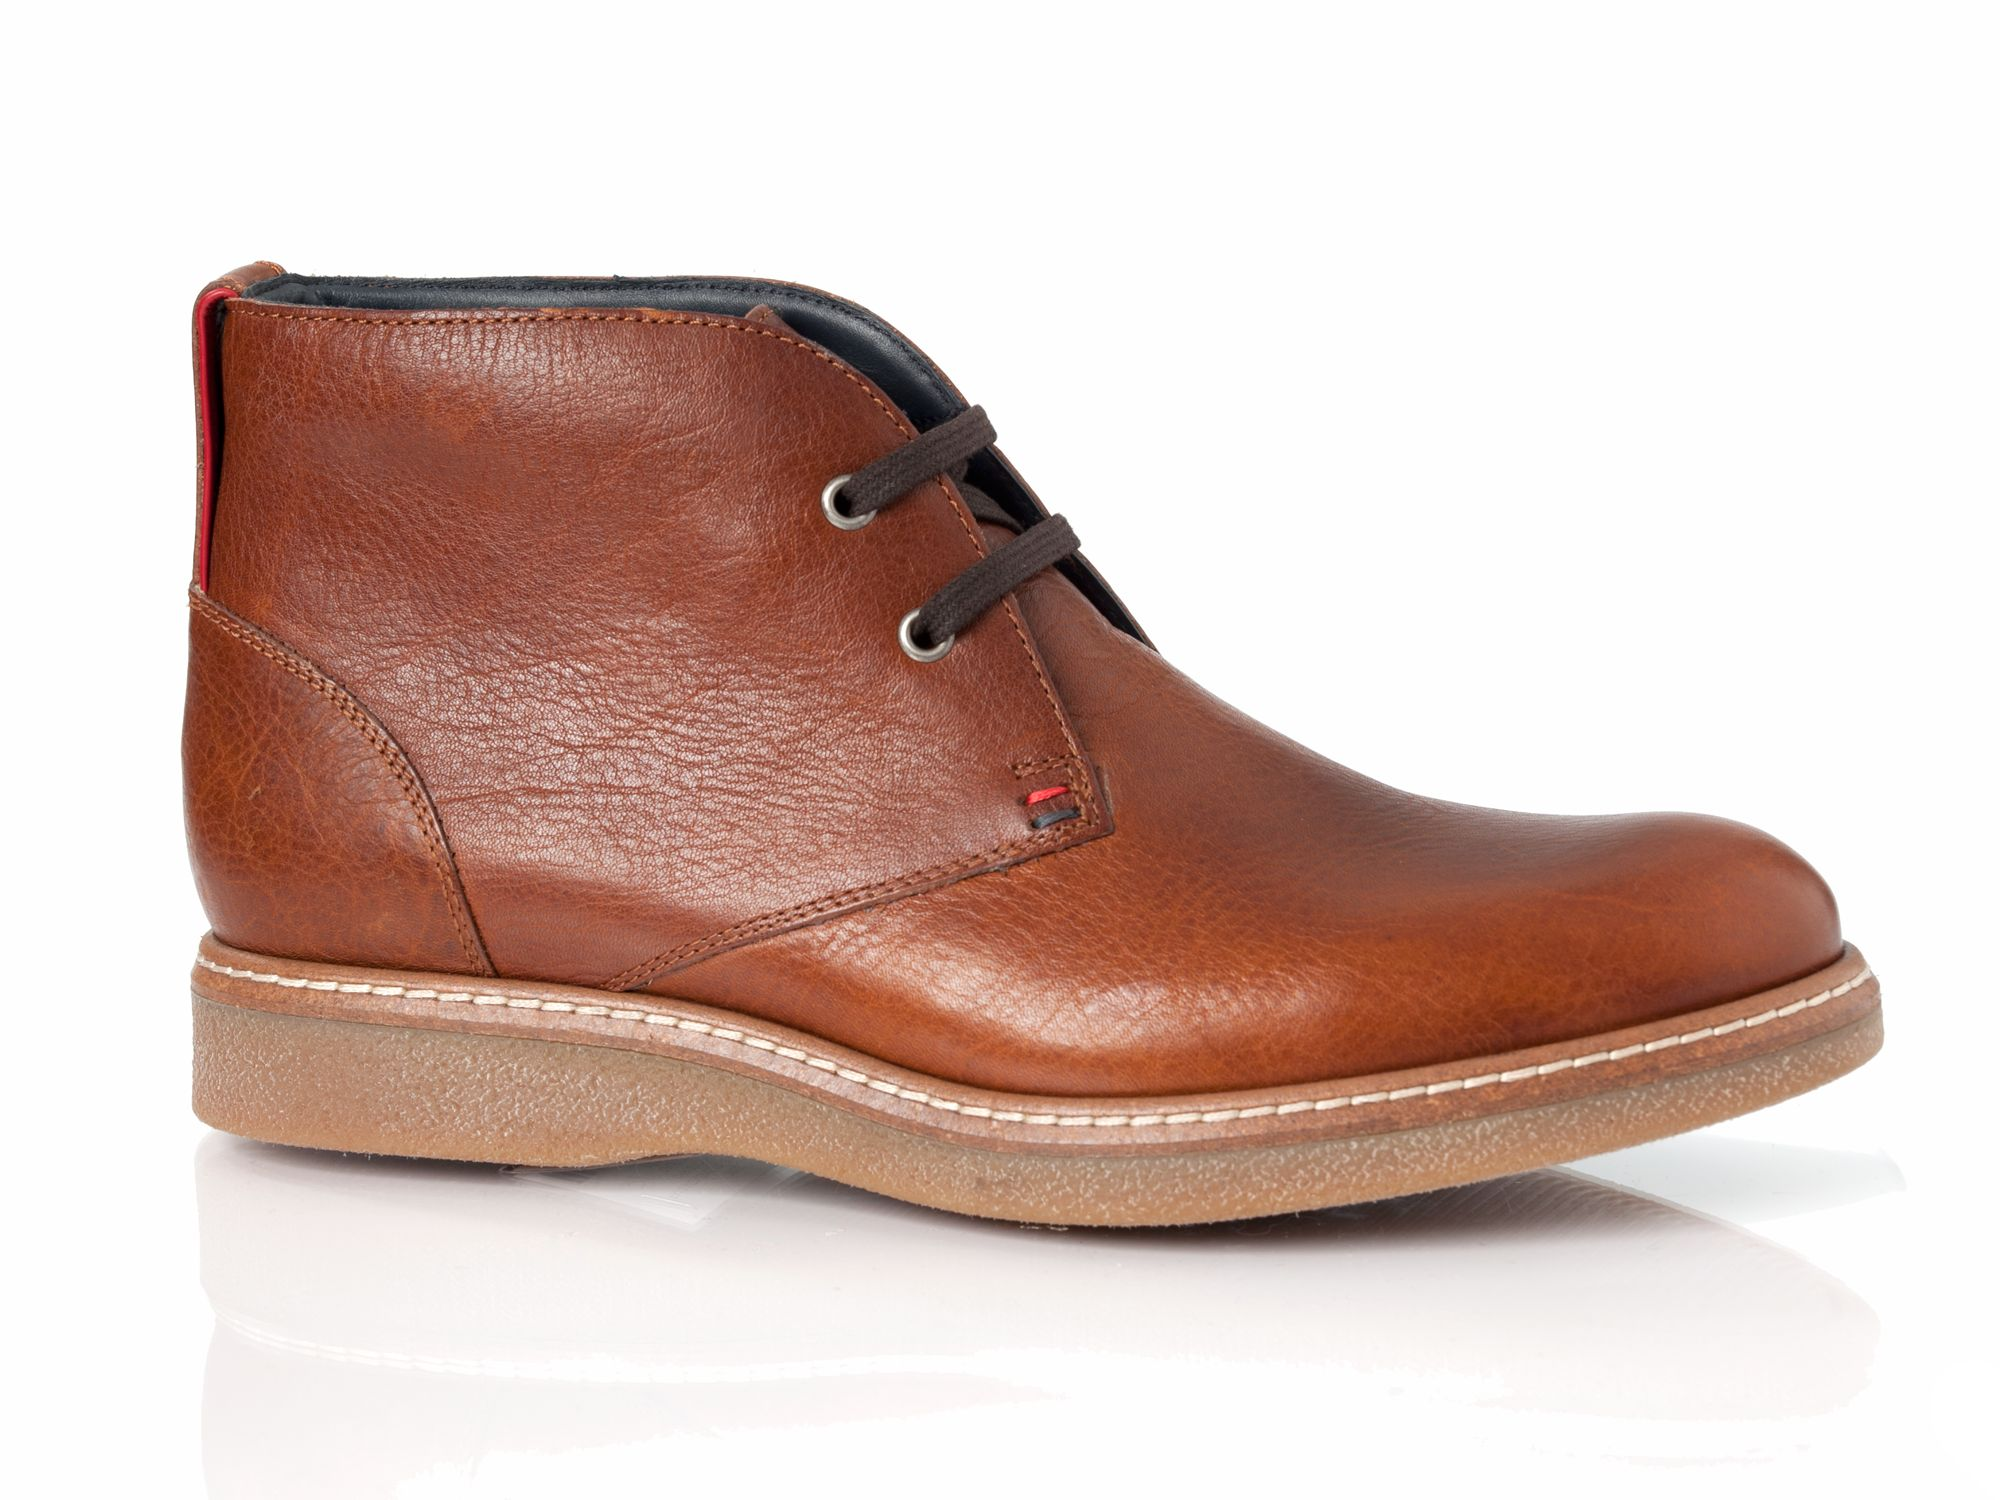 Christopher 1A casual boots